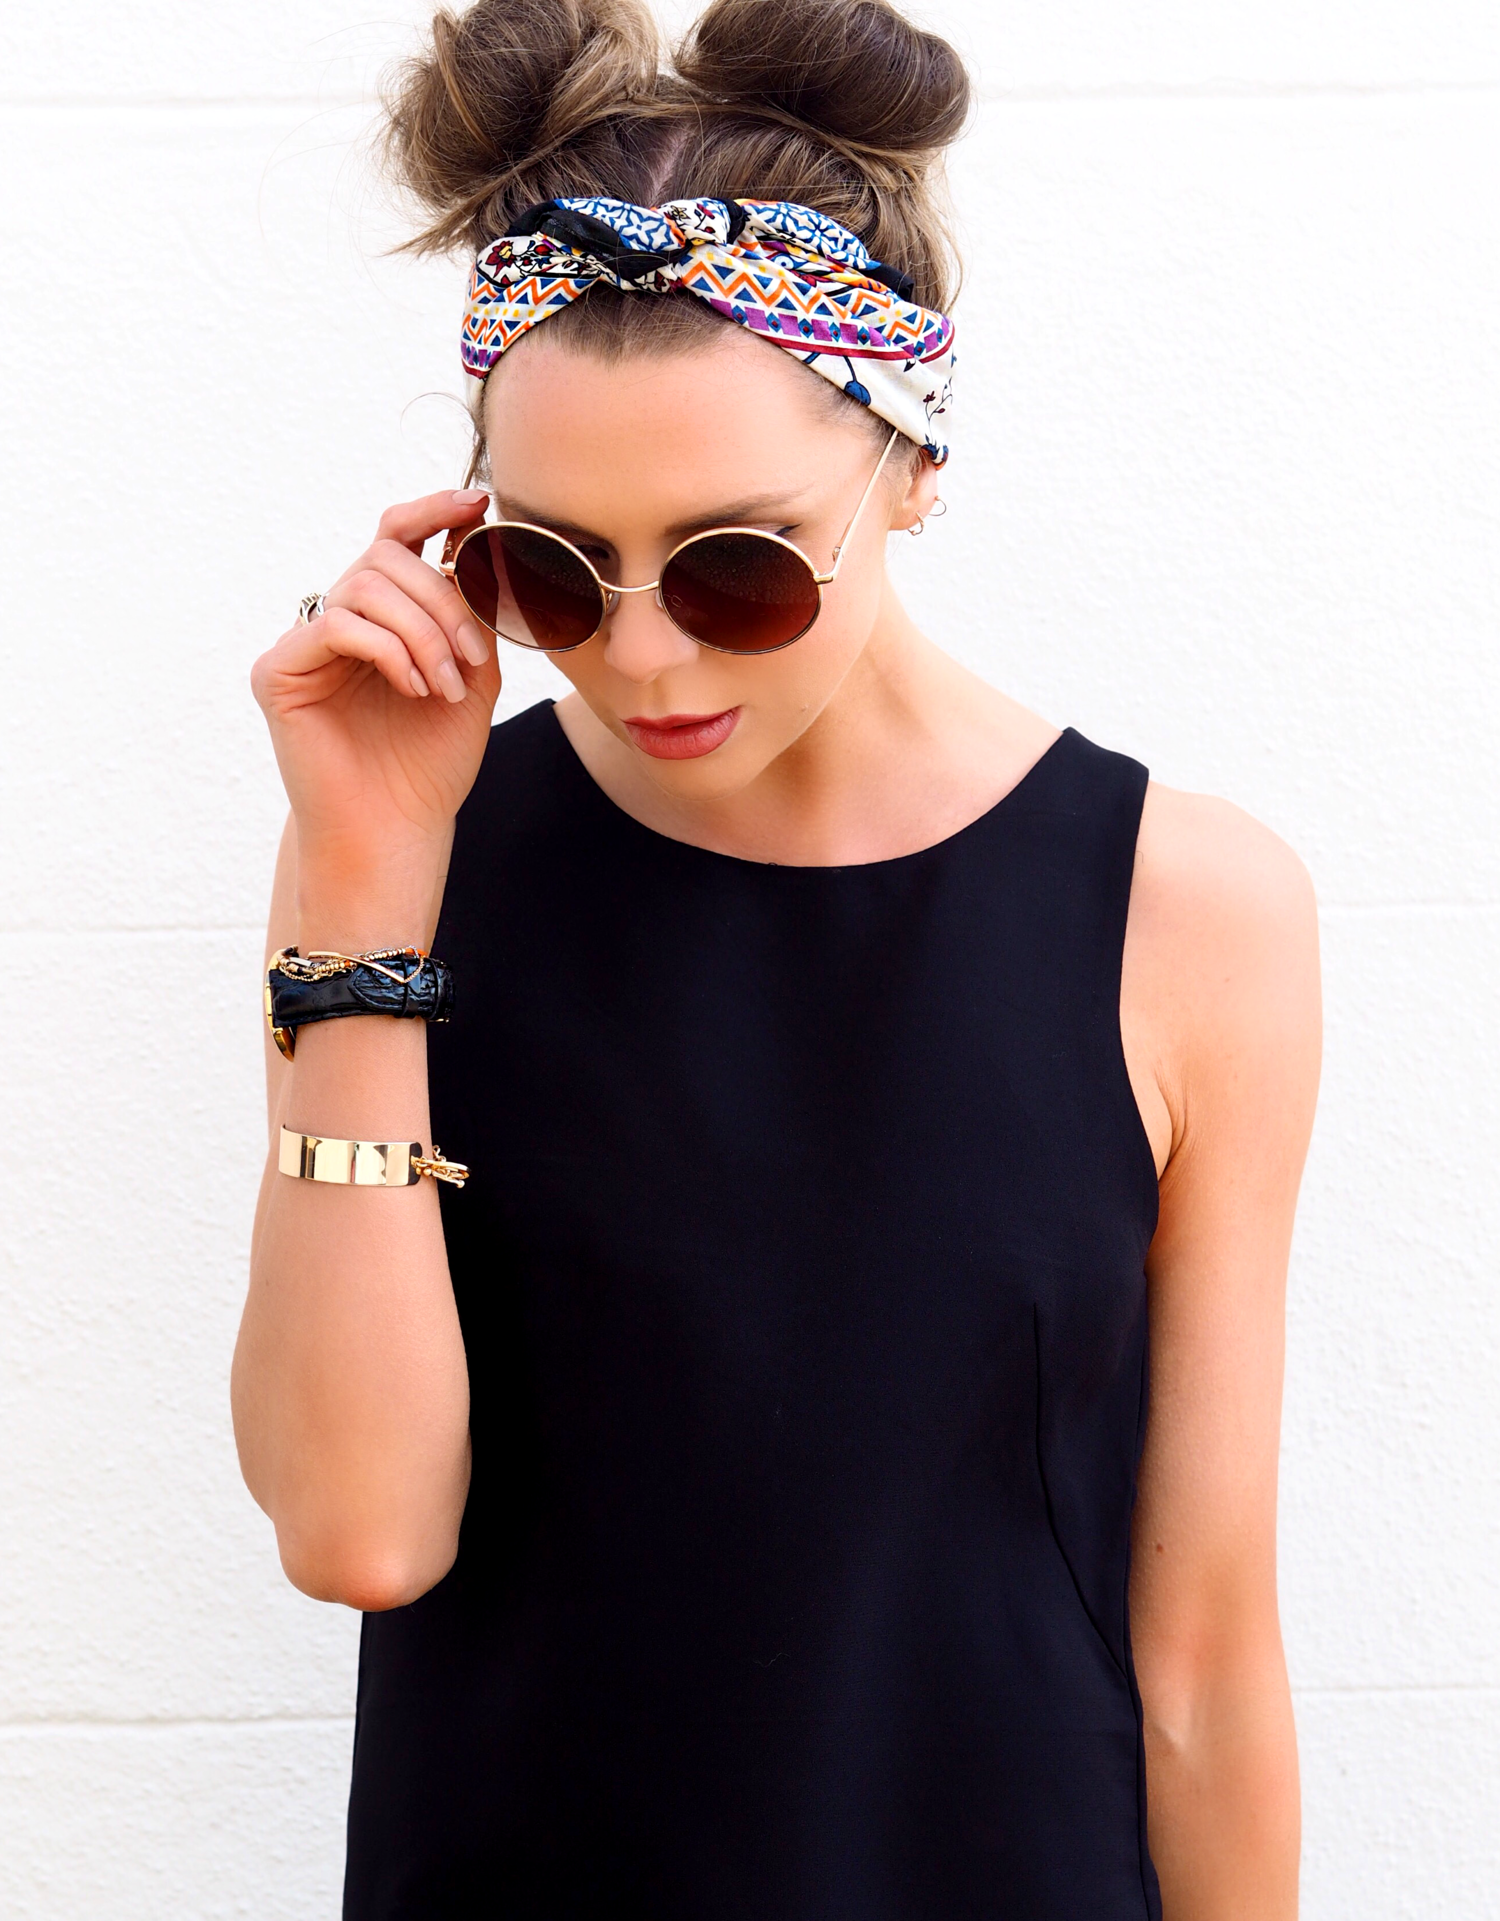 H&M SUMMER STYLE FASHION OUTFIT OF THE DAY OOTD LONDON FASHION GIRL LAURA BLAIR